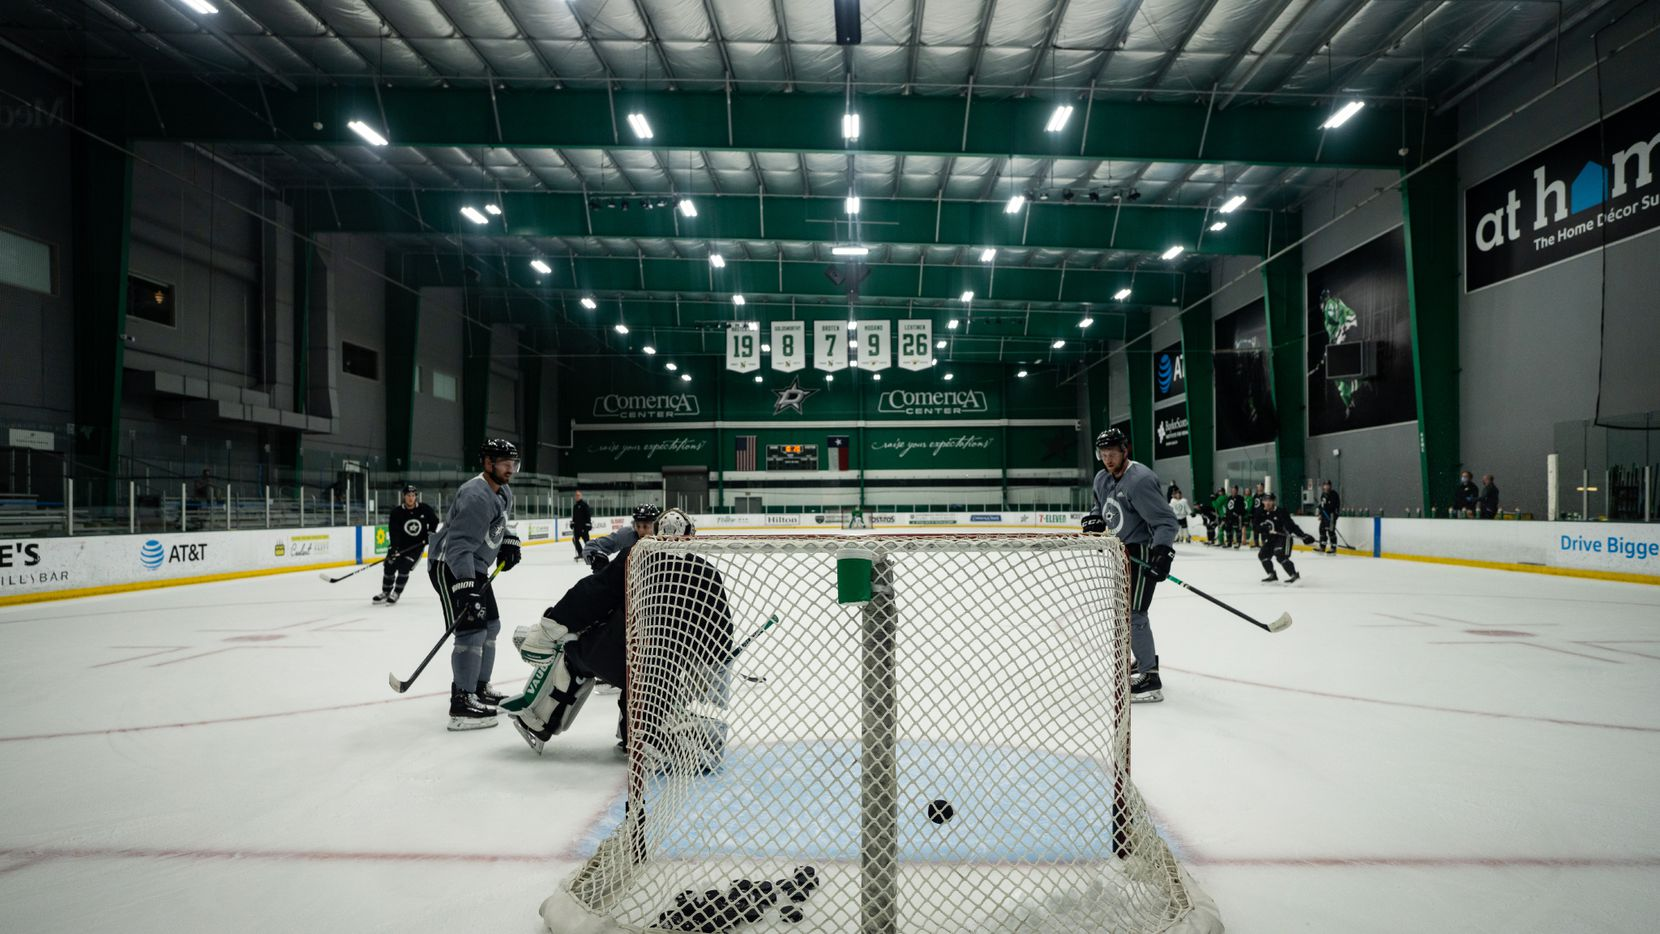 Blake Comeau (left) and Tyler Seguin (right) take shots at Dallas Stars' first training camp practice during the NHL restart on Monday, July 13.